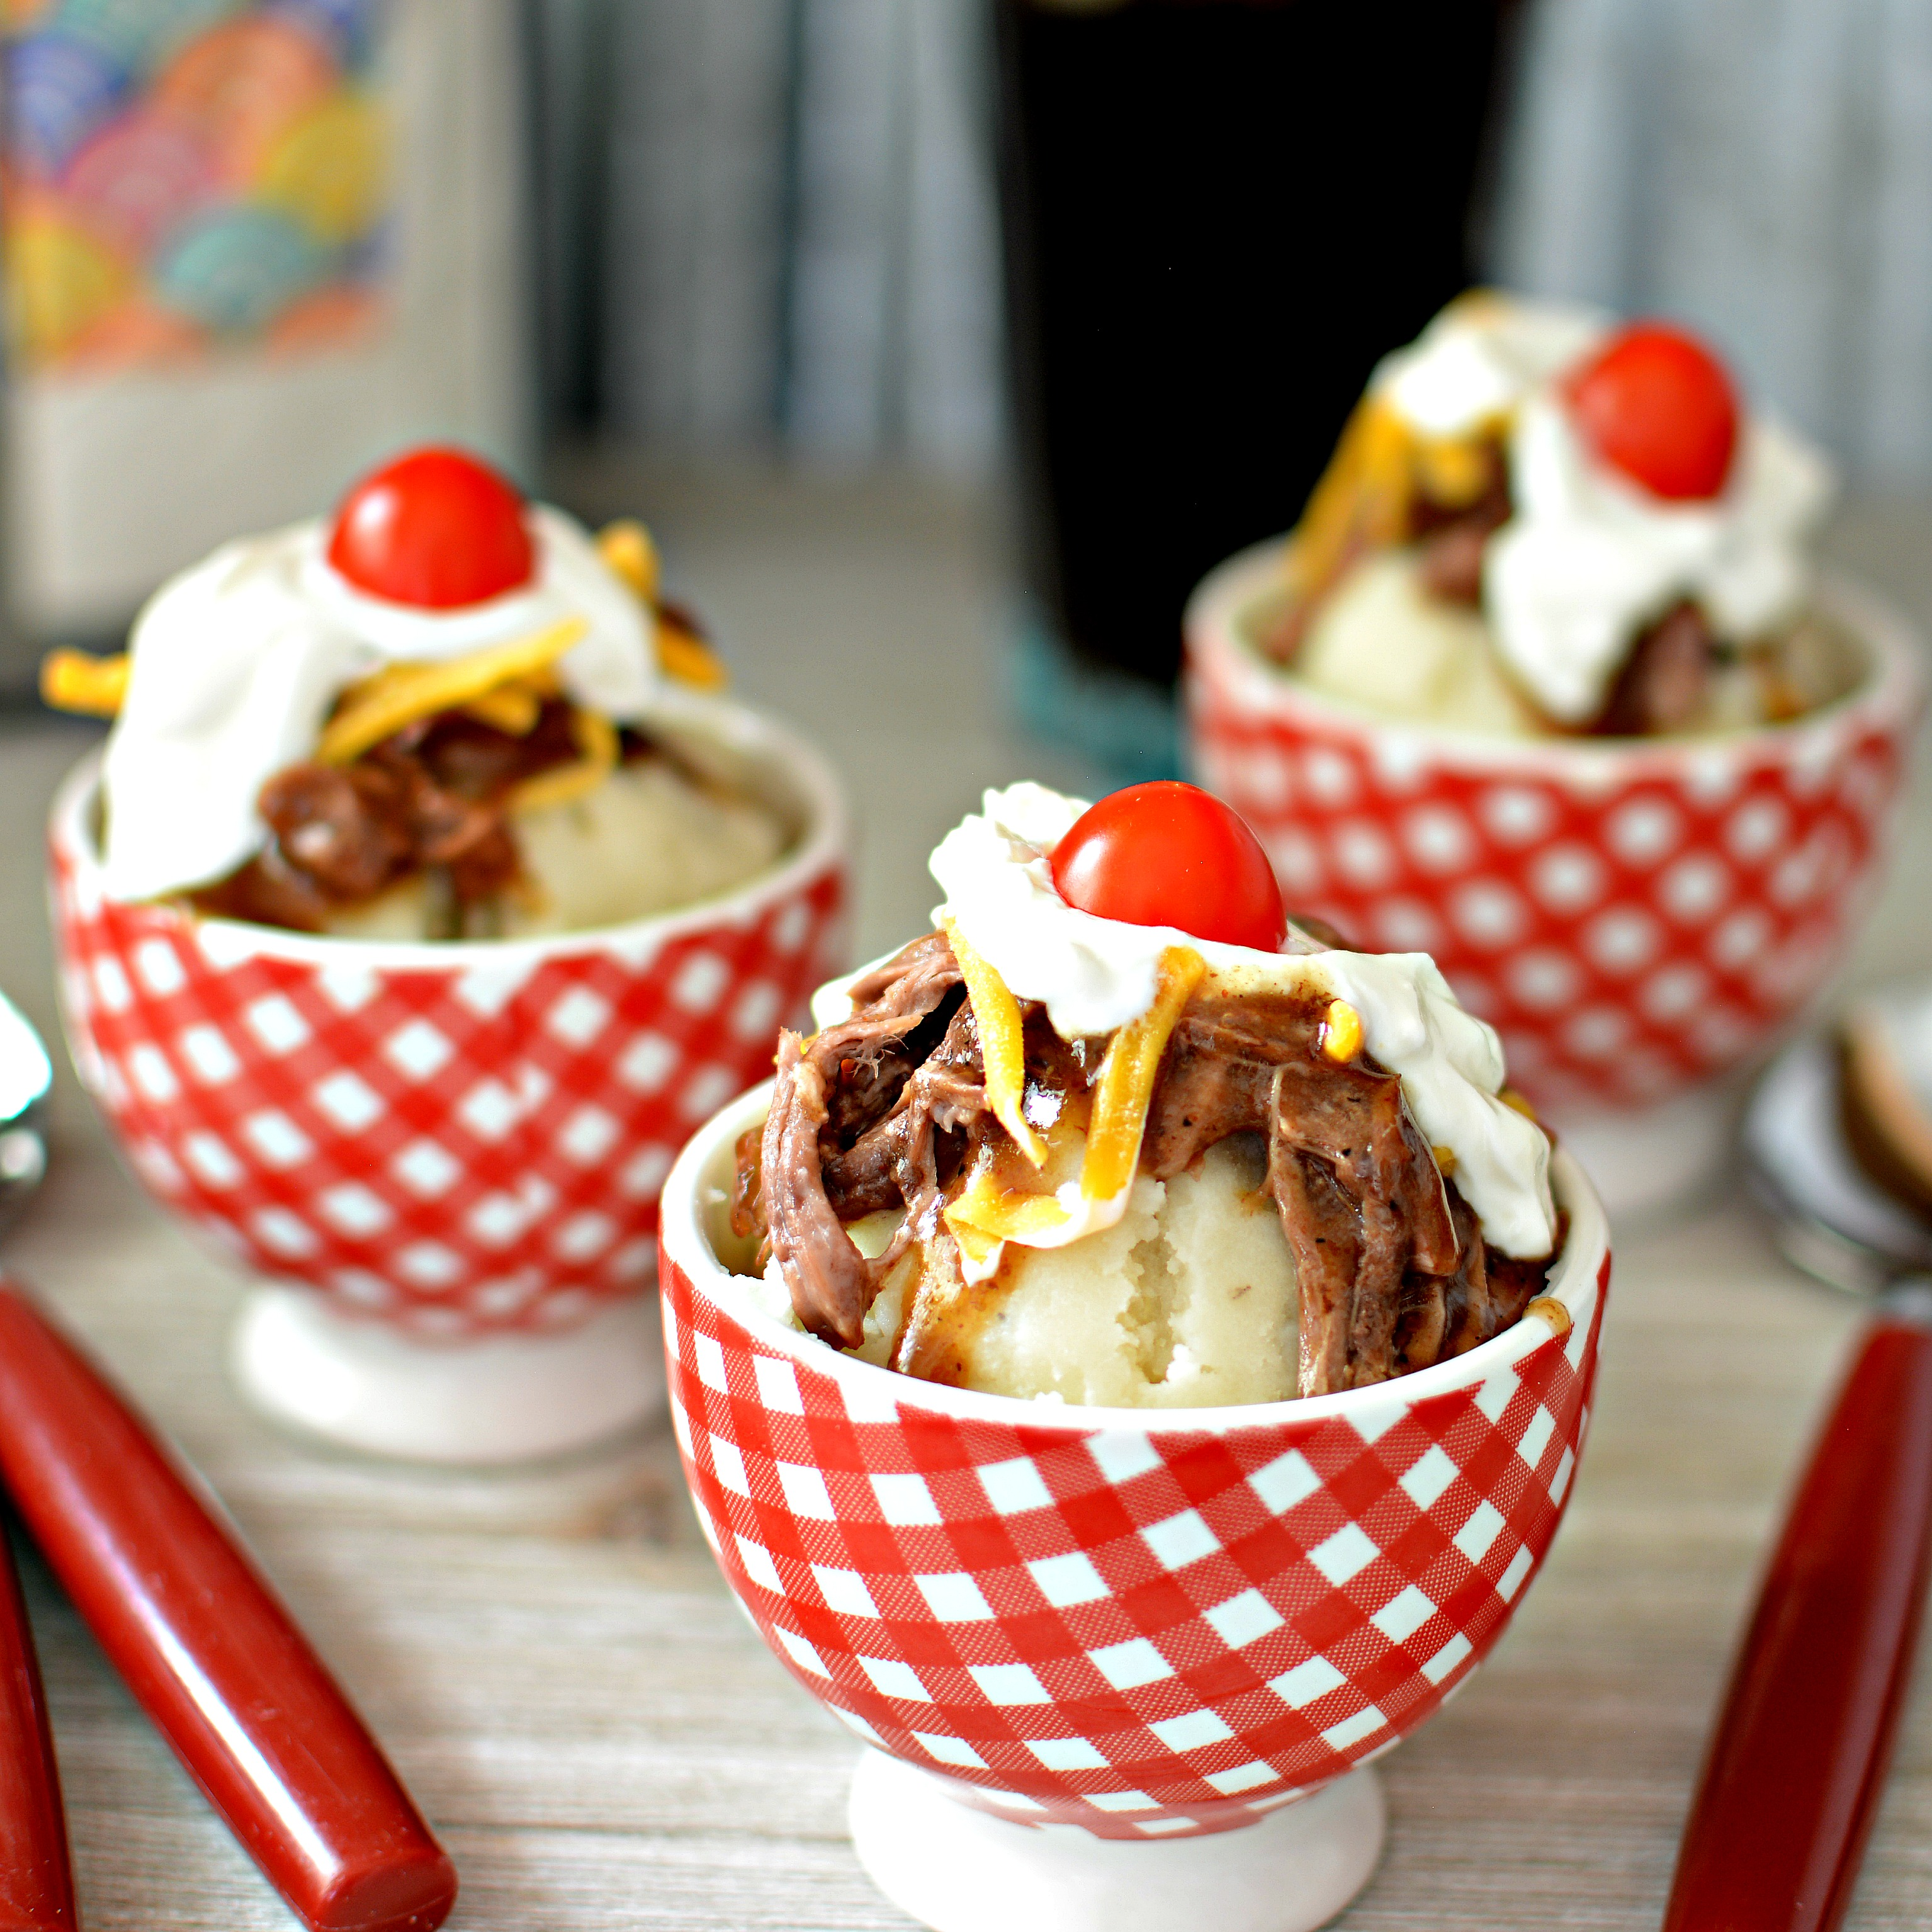 """""""We had this at the New York State Fair,"""" says recipe creator Cindi. """"When we saw the sign Hot Beef Sundae, we were both curious. Really, it looks just like a hot fudge sundae and when we got home we made our own version."""""""